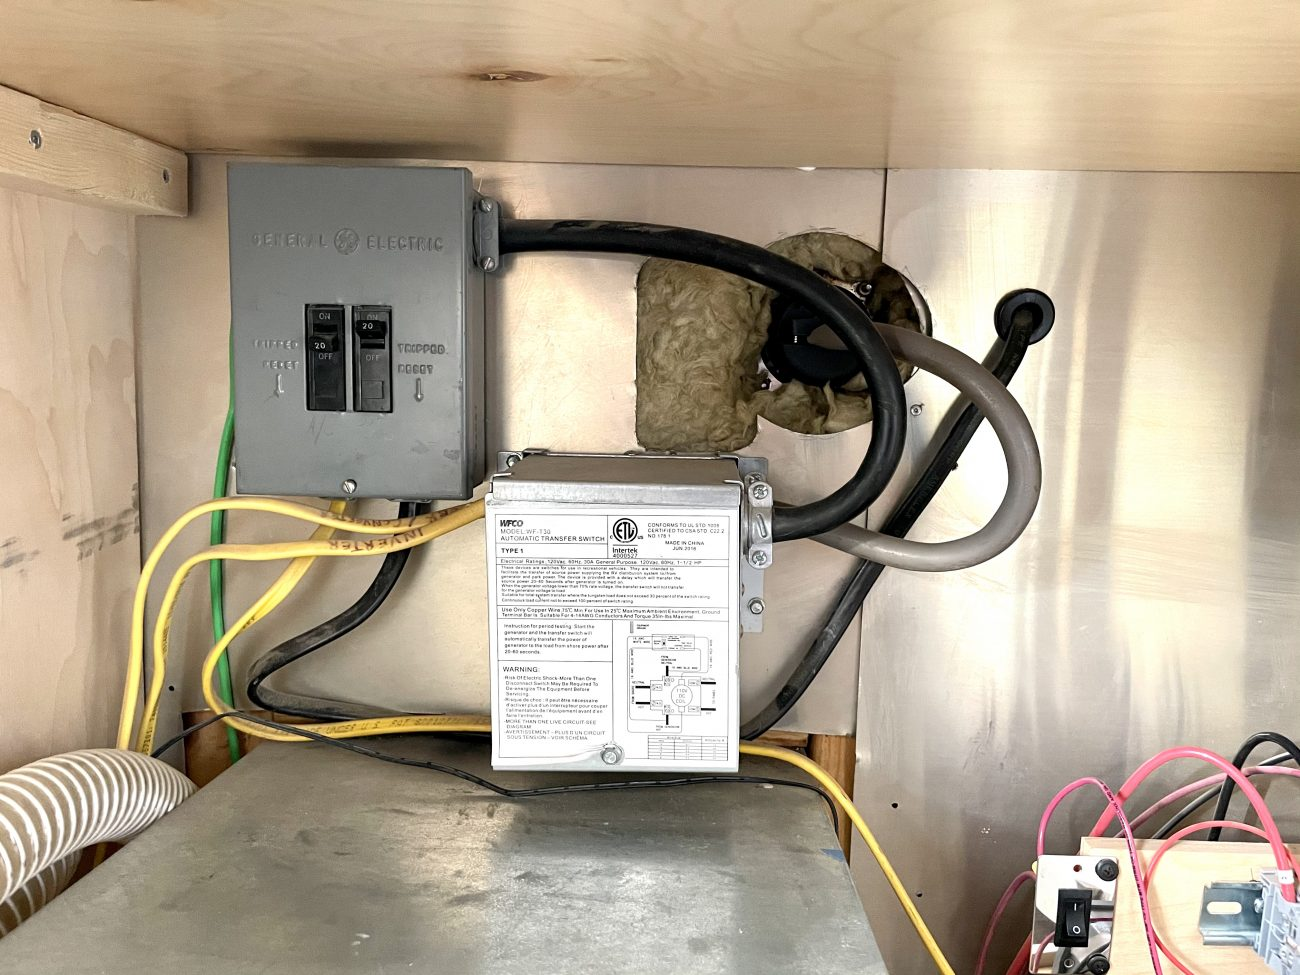 Shore power comes into transfer switch which goes out to breaker box, inverter, and converter.